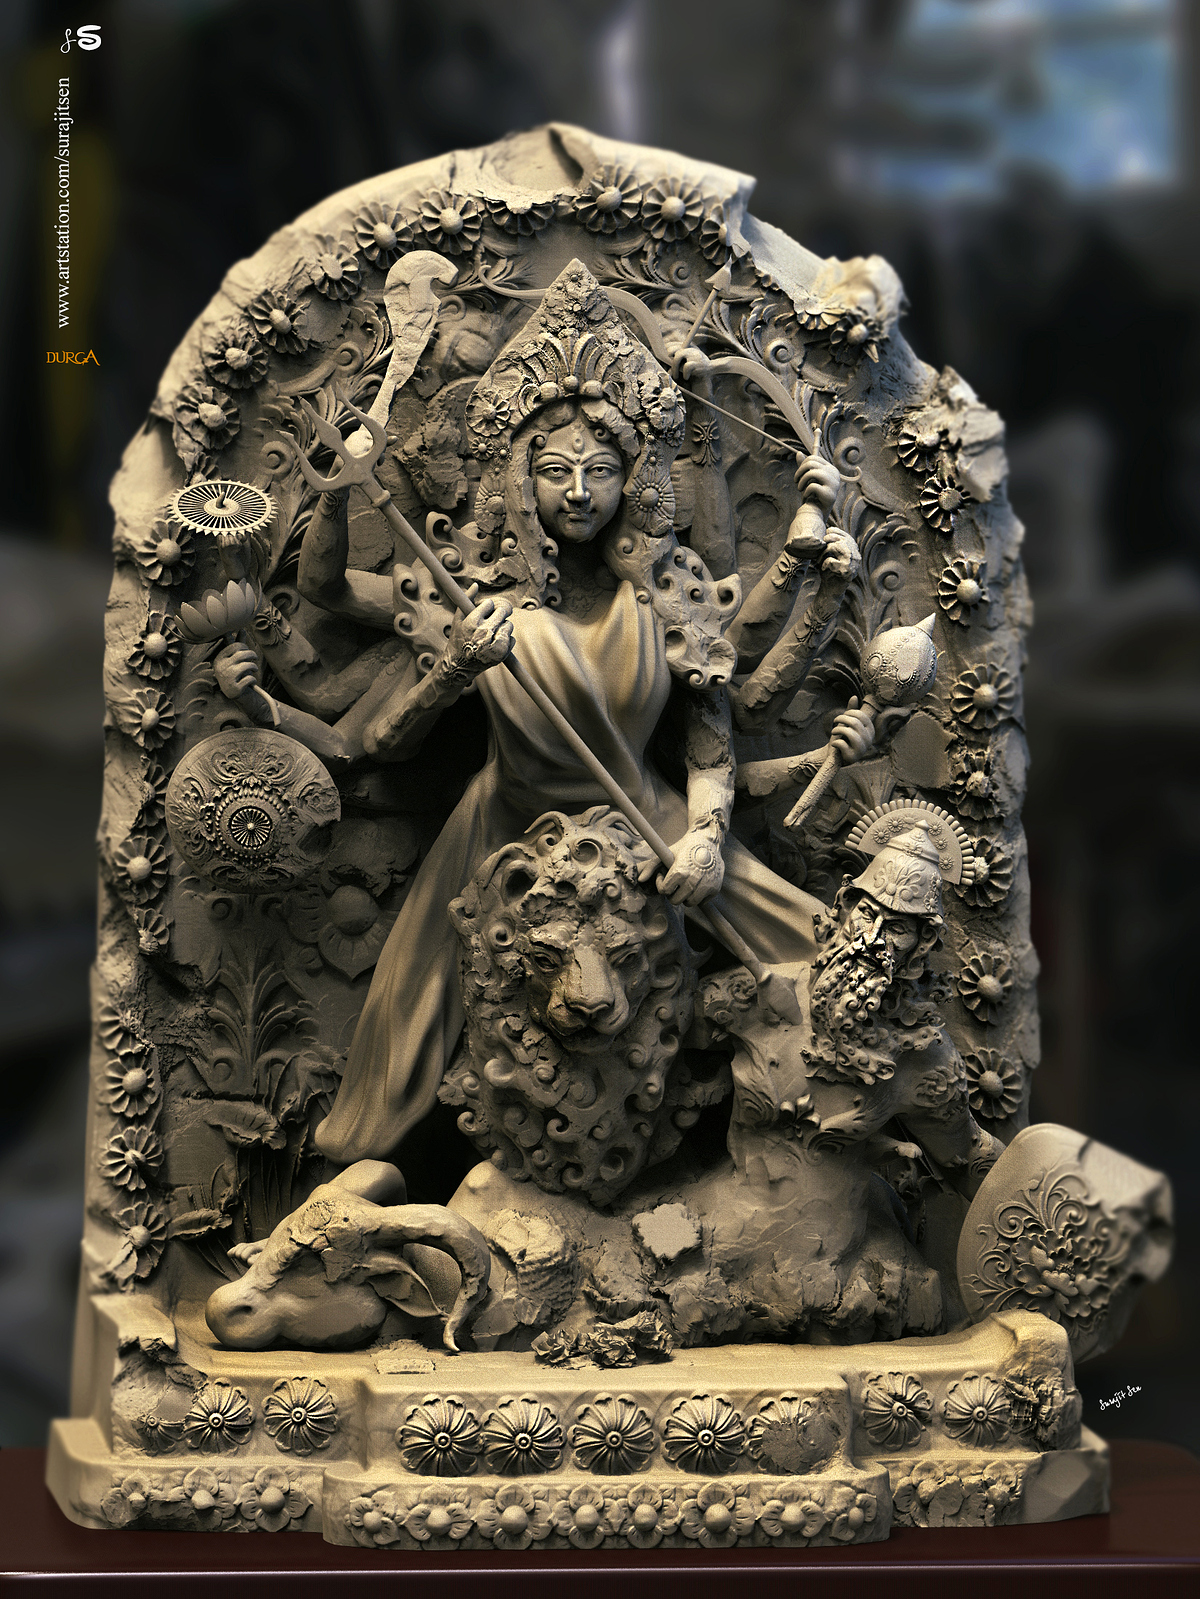 Durga_01_Digital_SCulpture_SurajitSen_March2020S